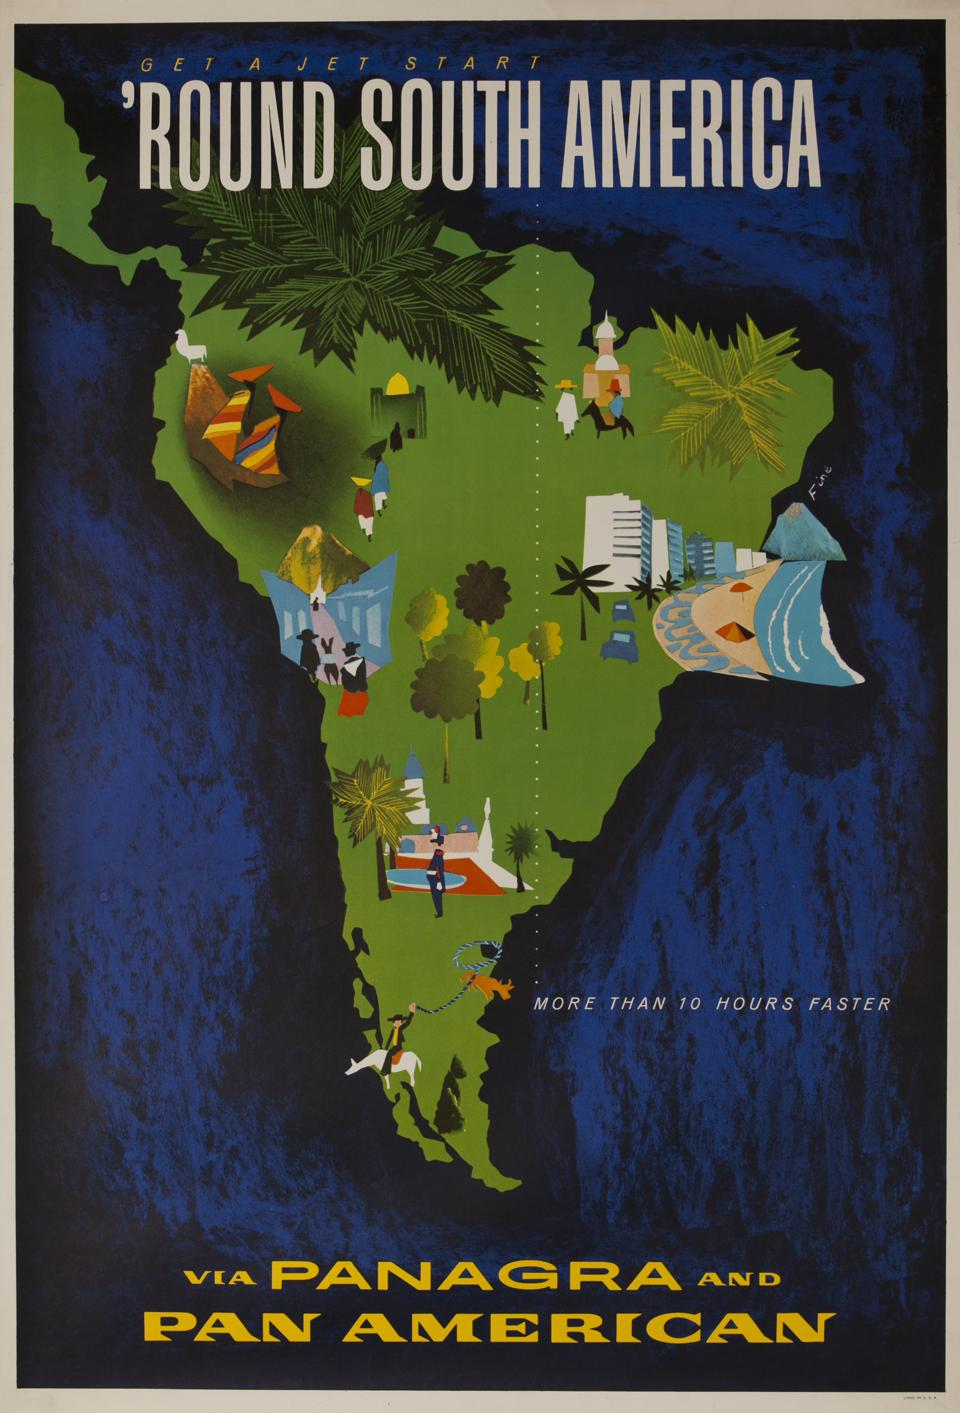 Pan Am Travel Poster, 'Round South America Icon images